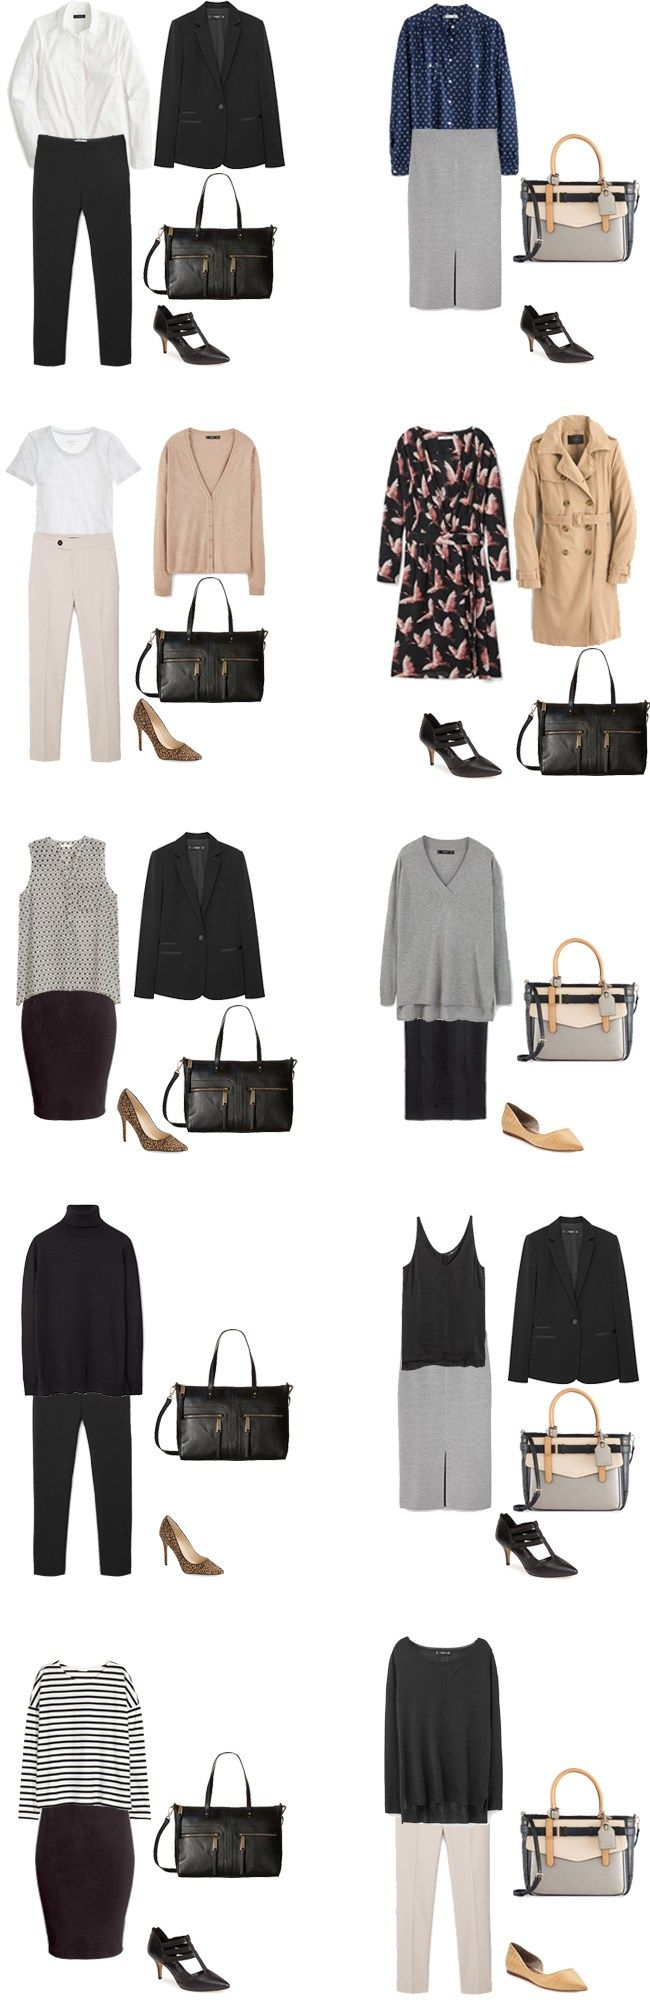 Basic Work Capsule Outfits 1-10 #capsulewardrobe #workwardrobe #workwear…